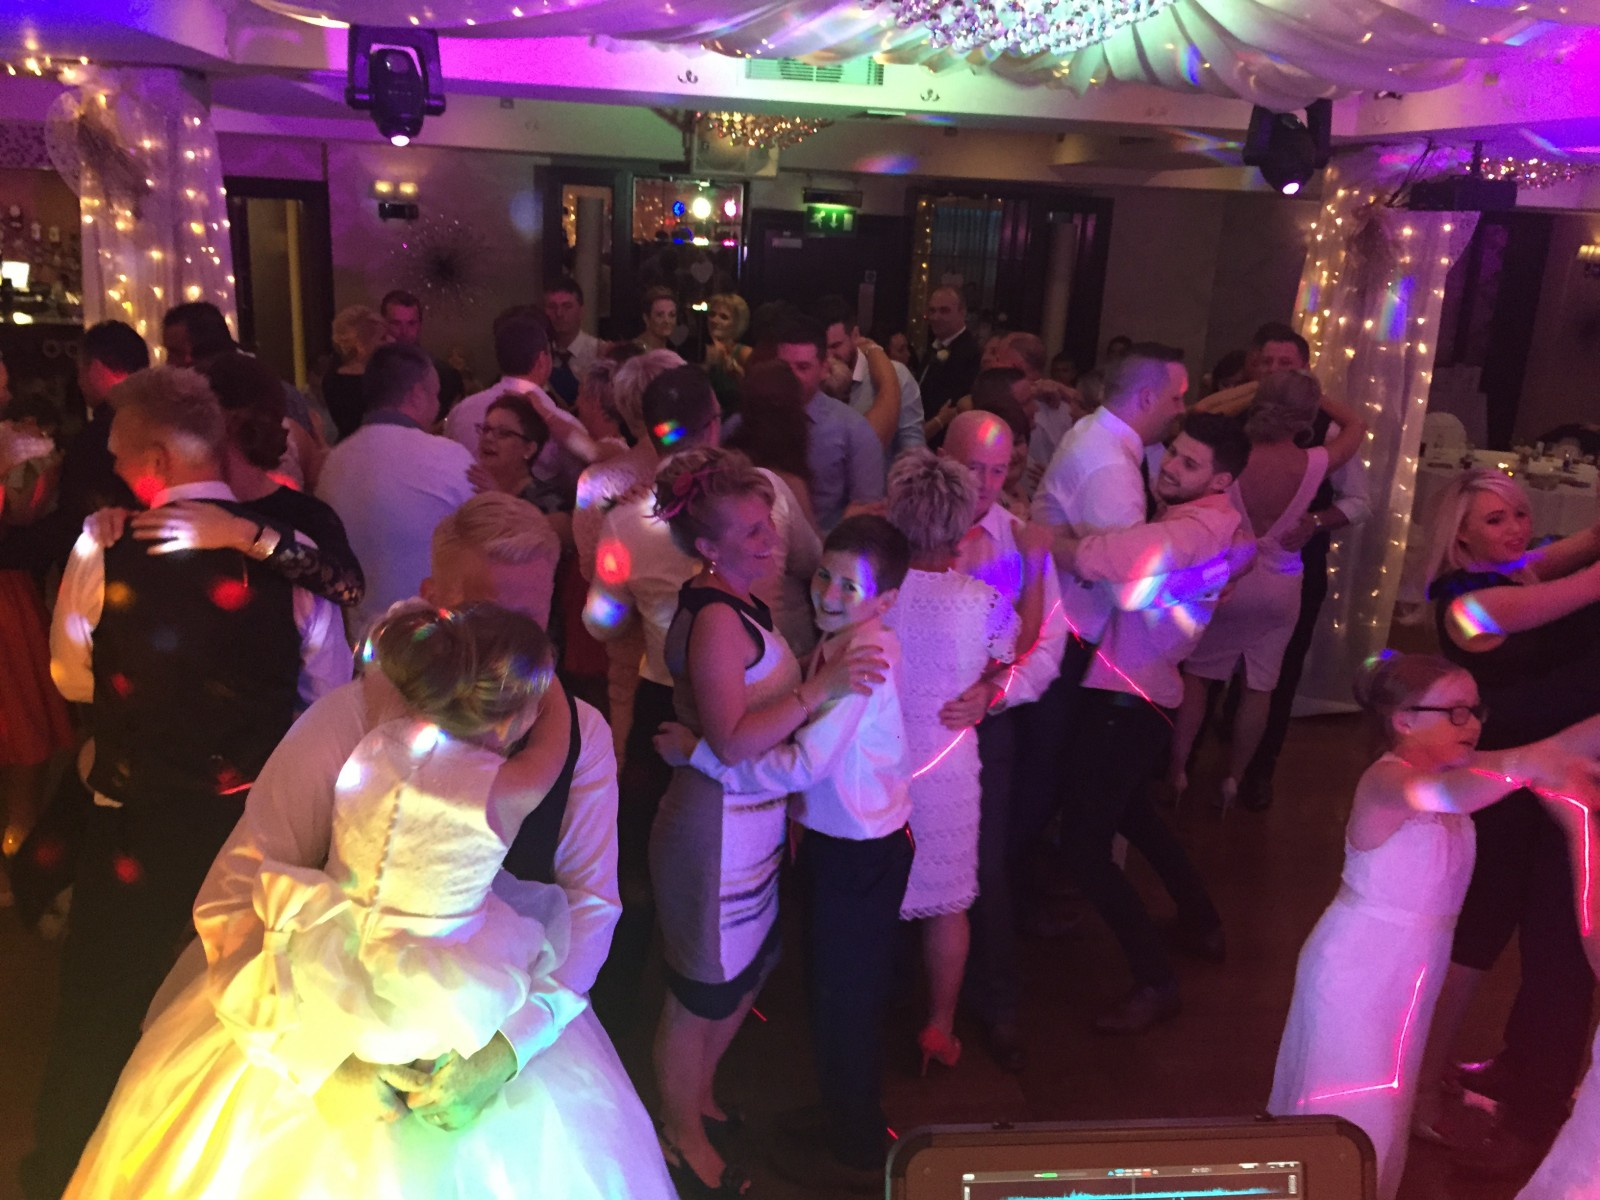 Crowd shot Ramada Hotel The Wedding disco 2015-07-24 21.13.22